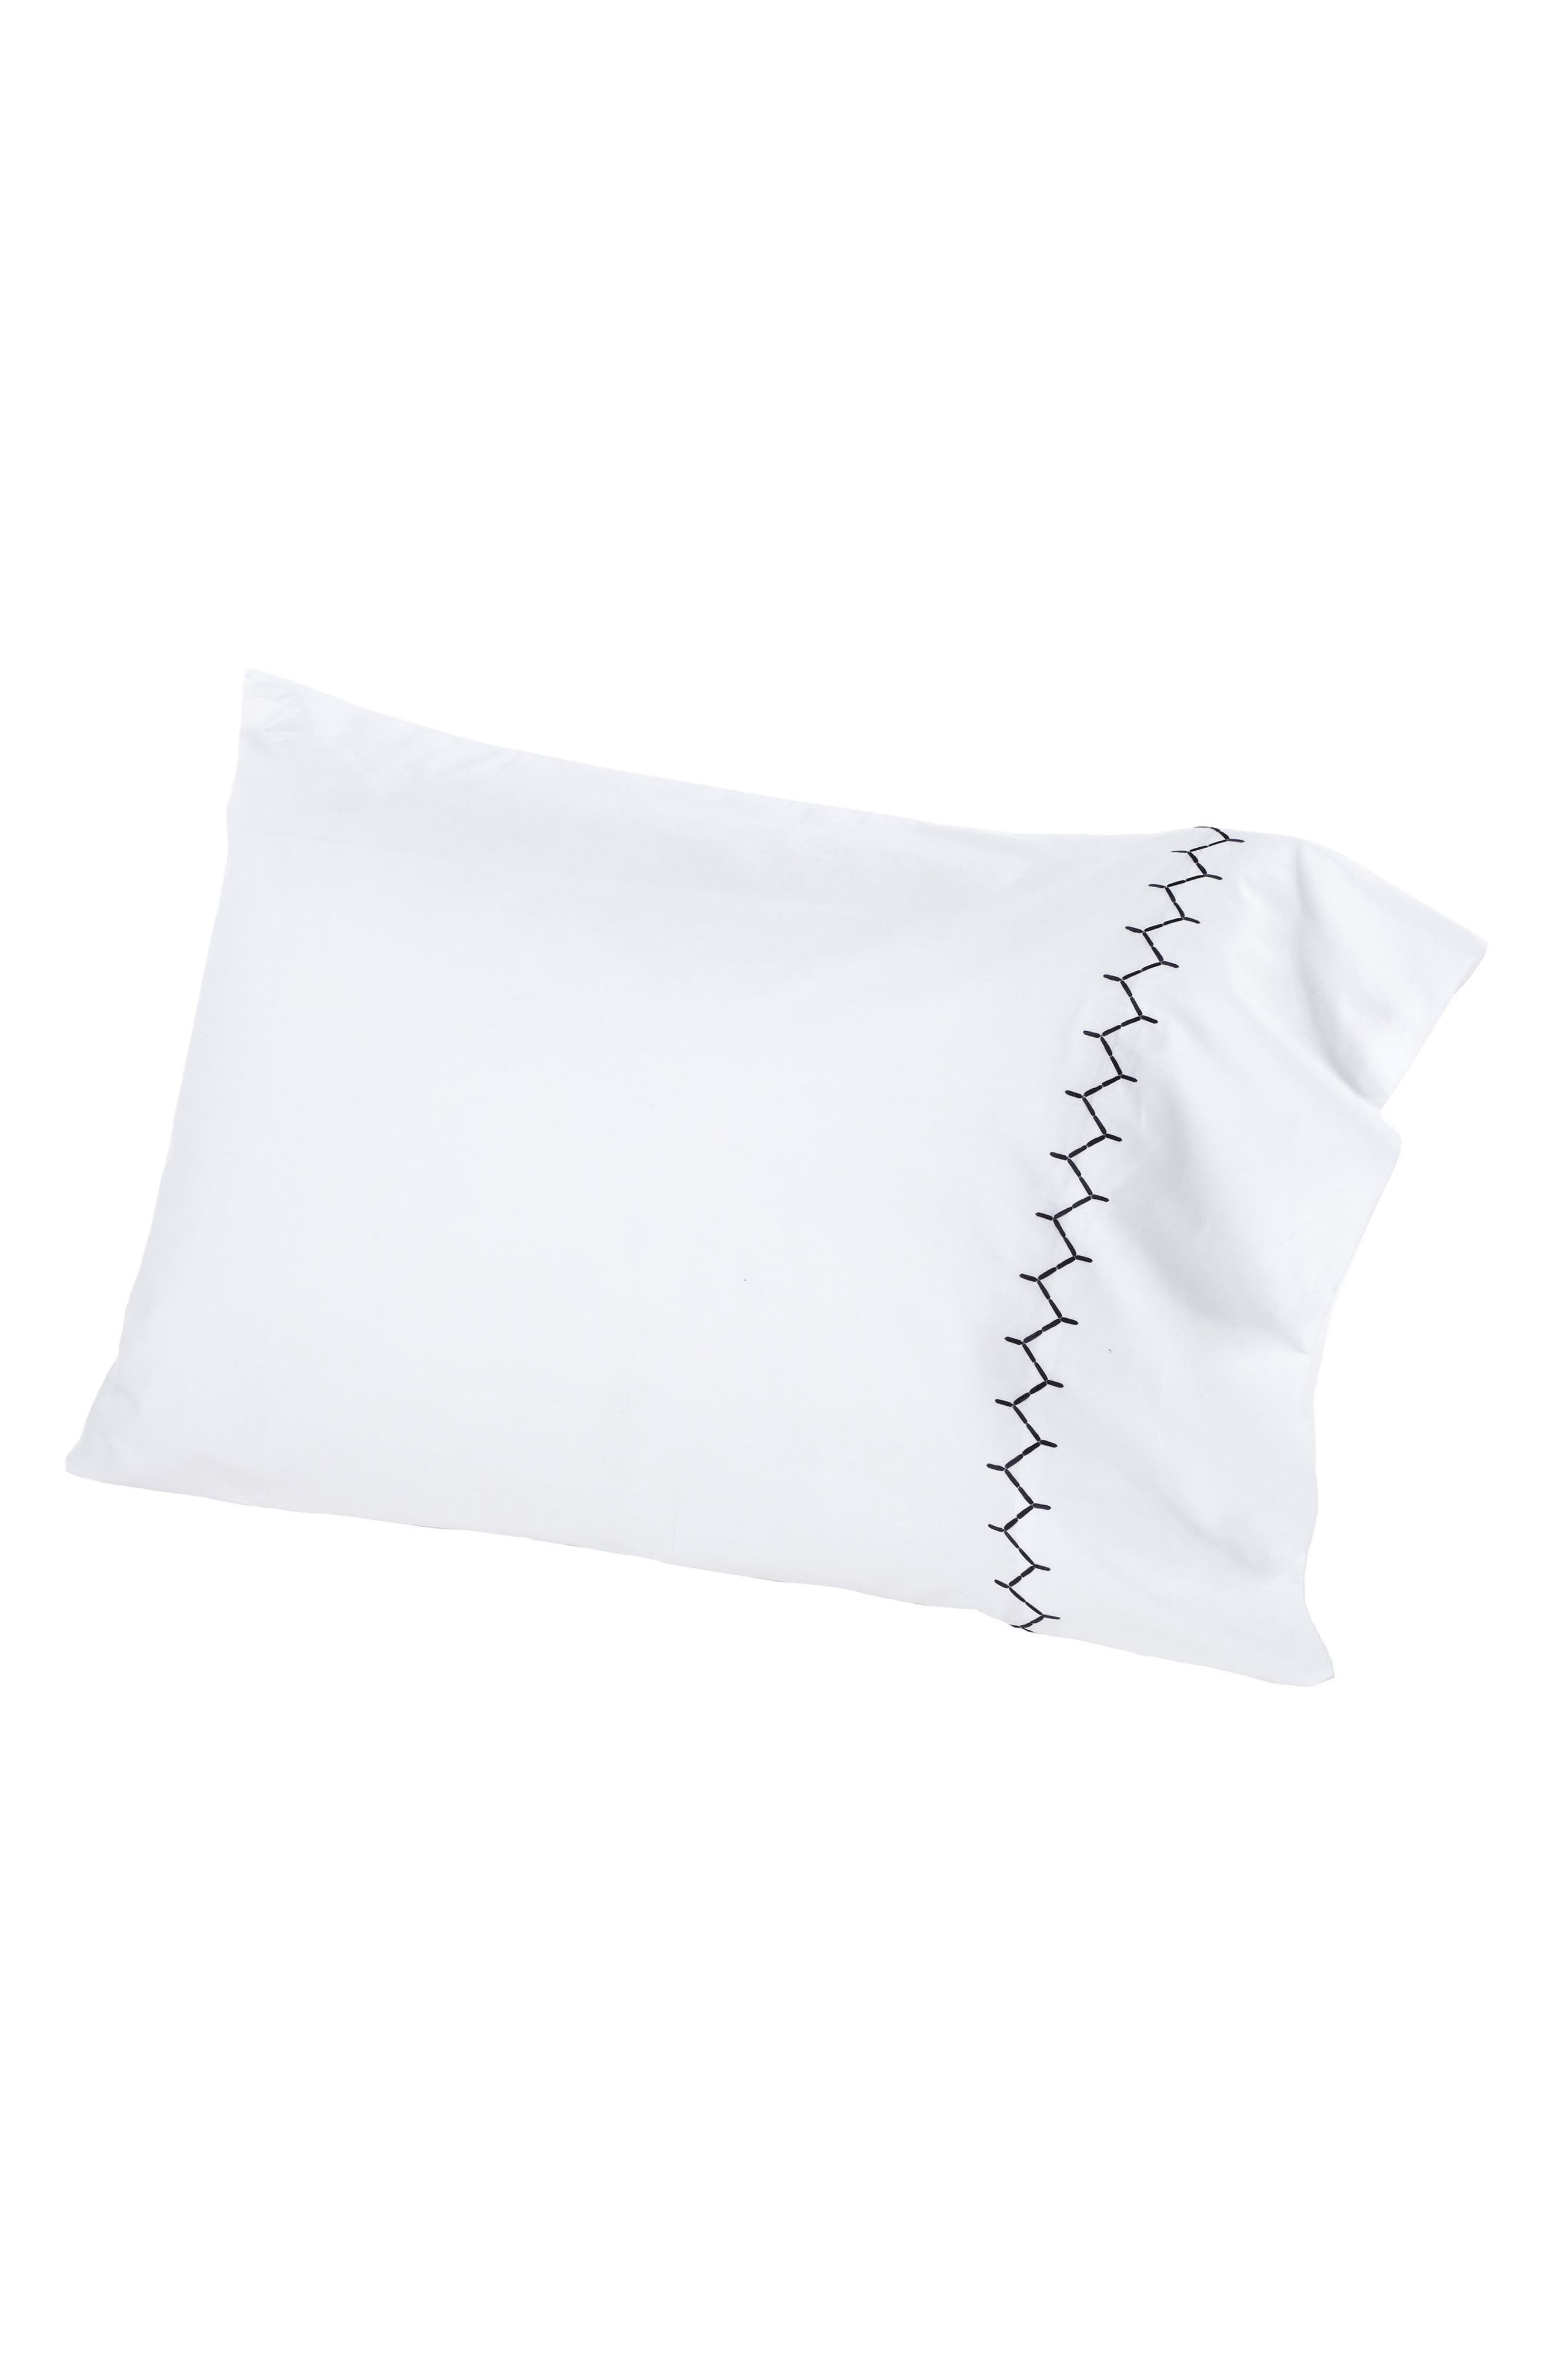 Stitched Set of 2 Combed Cotton Pillow Cases,                         Main,                         color, Ink/ White